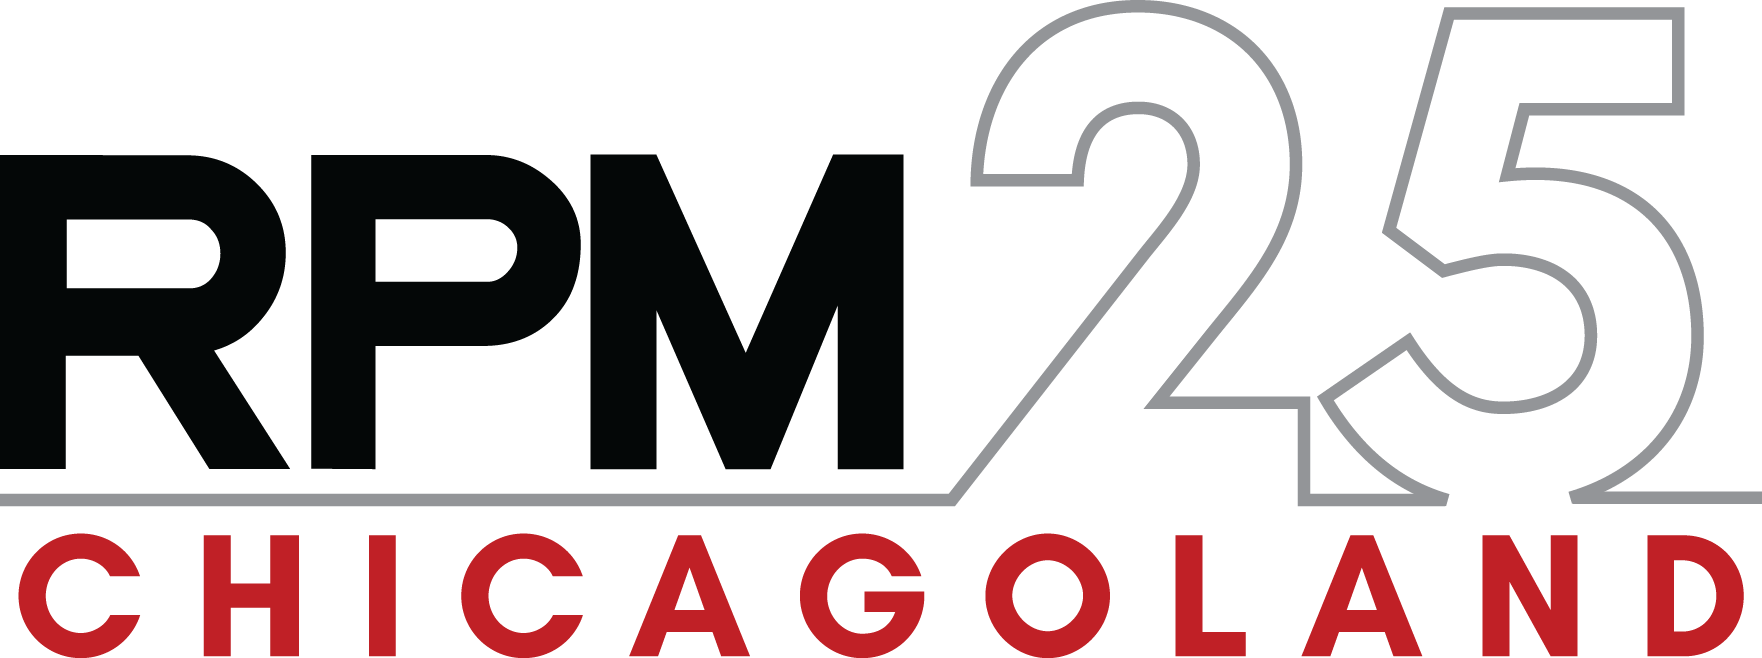 RPM CONFERENCE - Chicagoland: October 18-20, 2018